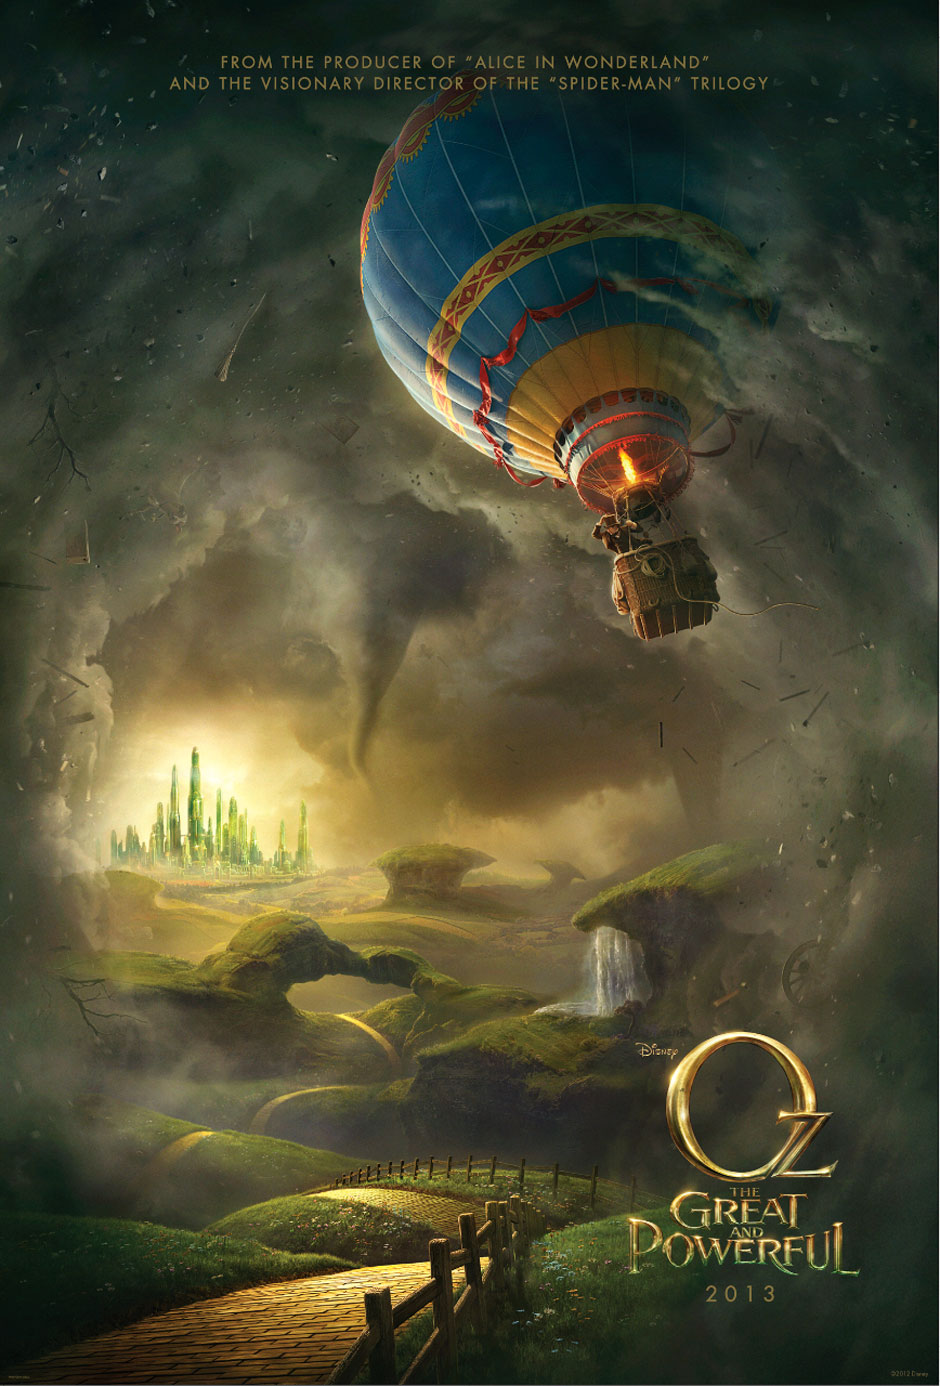 Oz: The Great and Powerful and Soundtrack